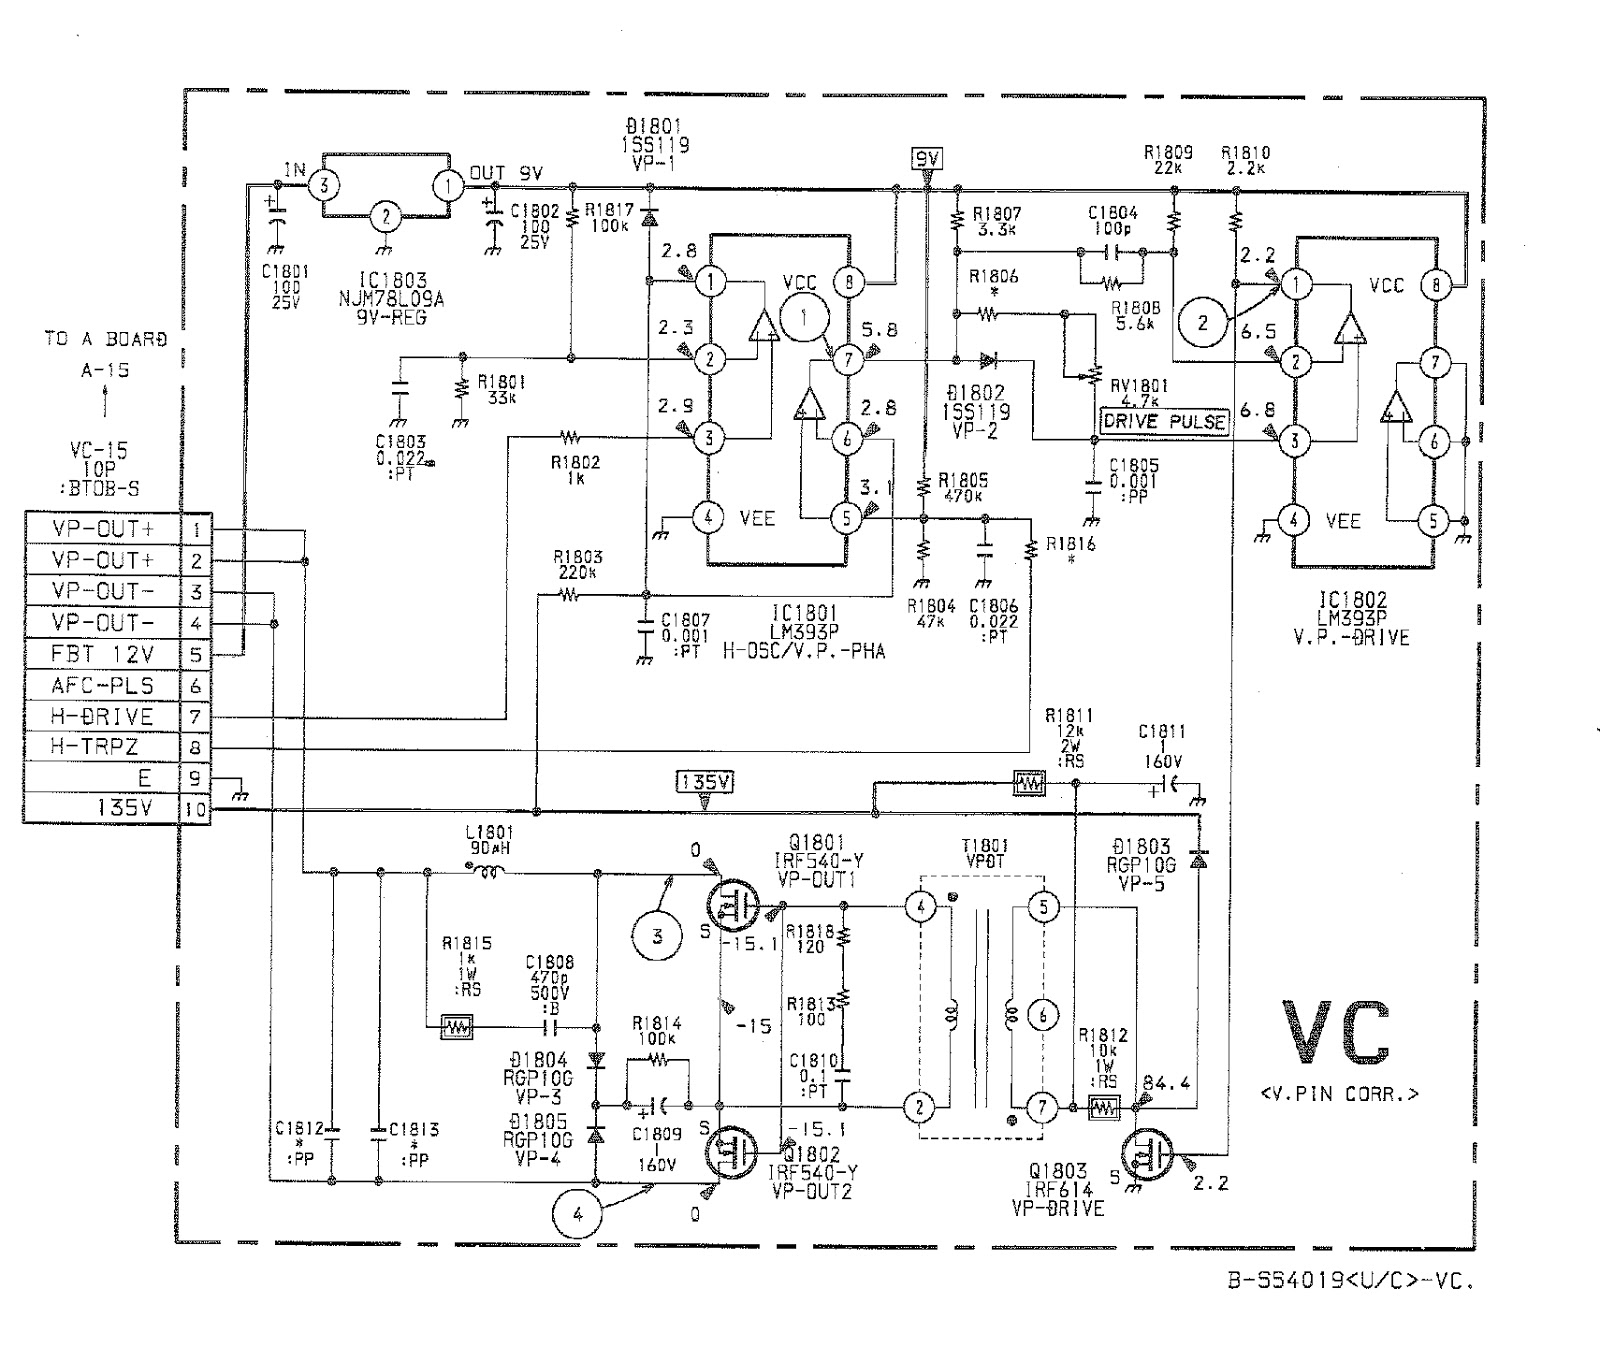 ls180 wiring diagram dodge ram ignition wiring diagrams lcd tv Goodman Heat Pump Wiring Schematic lcd tv wiring diagram wiring diagram led tv wiring image wiring diagram samsung lcd tv wiring